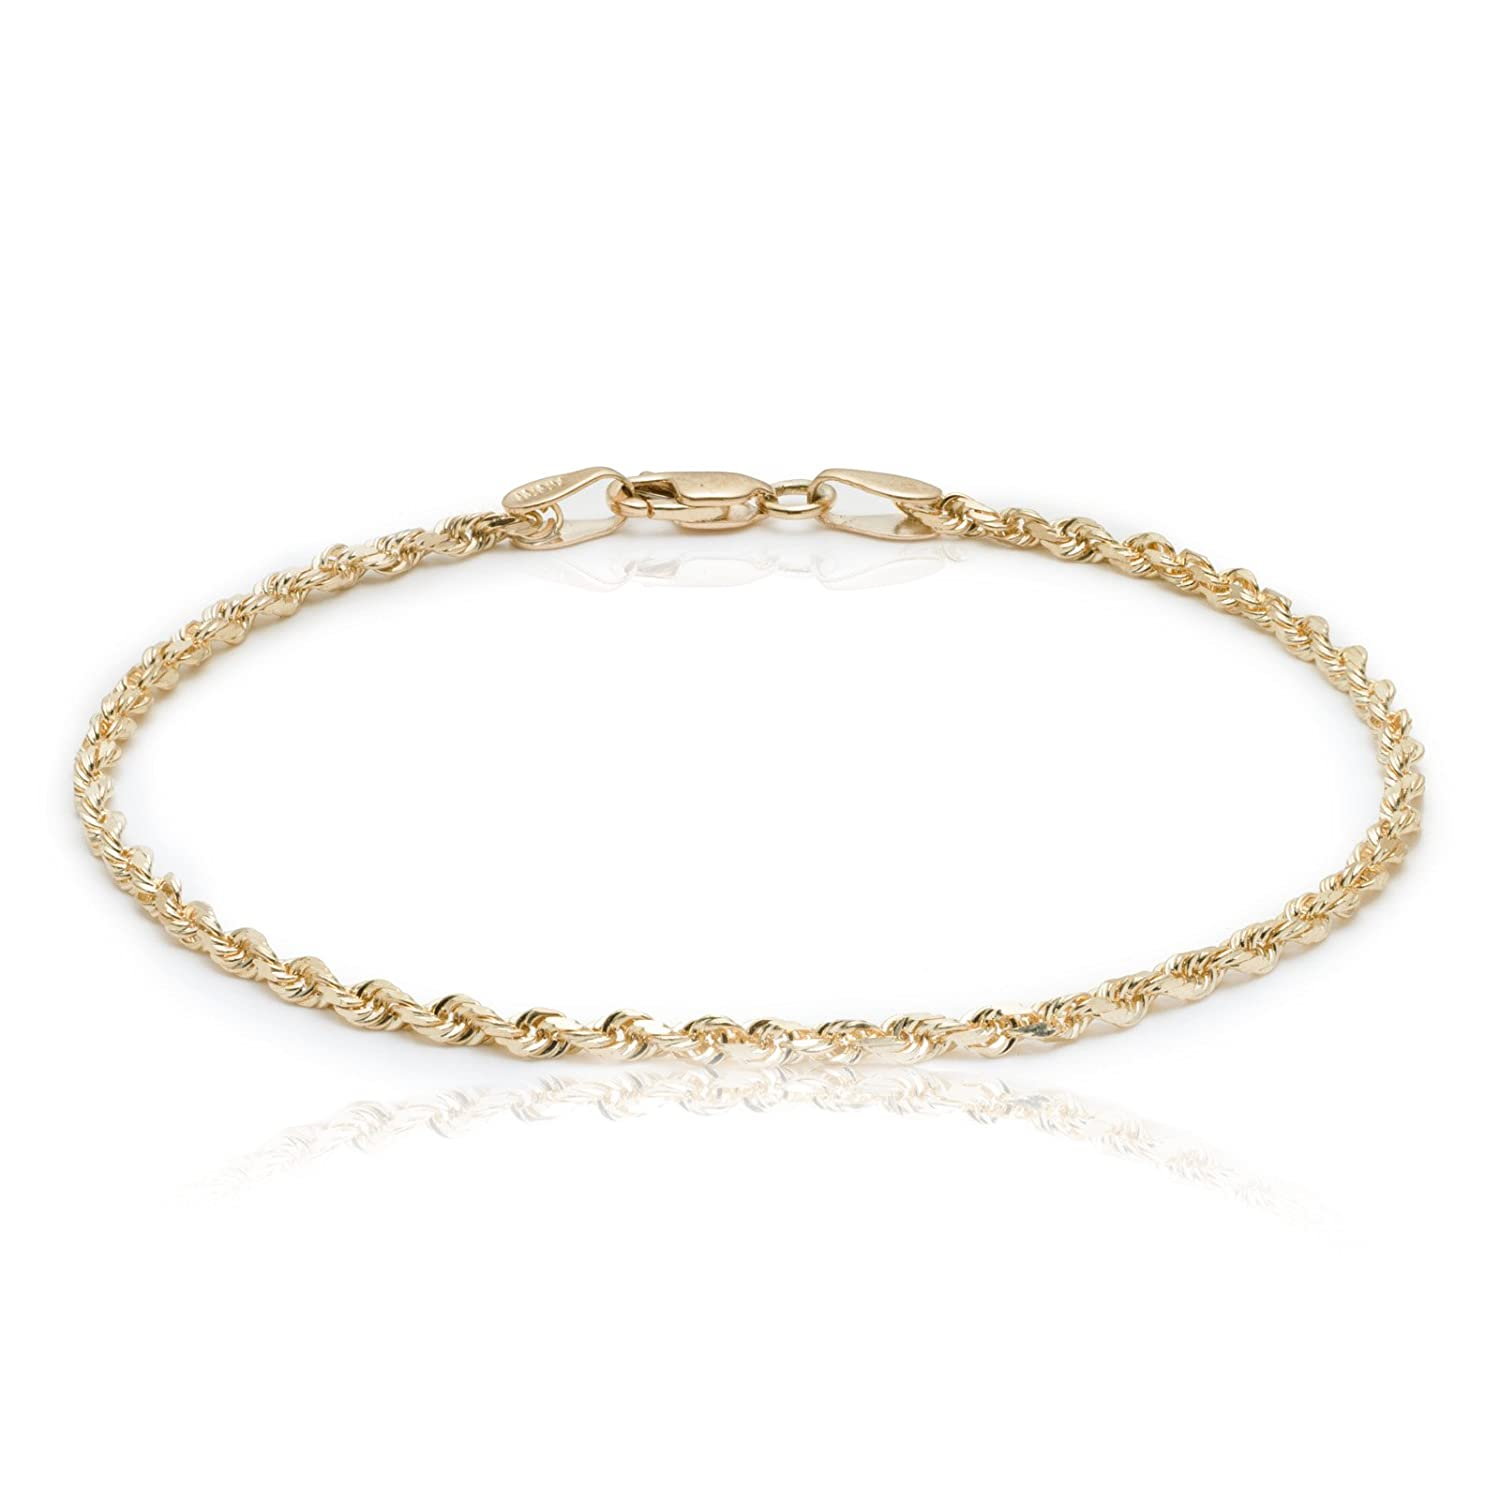 ankle chain finejwlry productimg sweetheart bracelet products bijou anklet collections anklets gold nana white triple